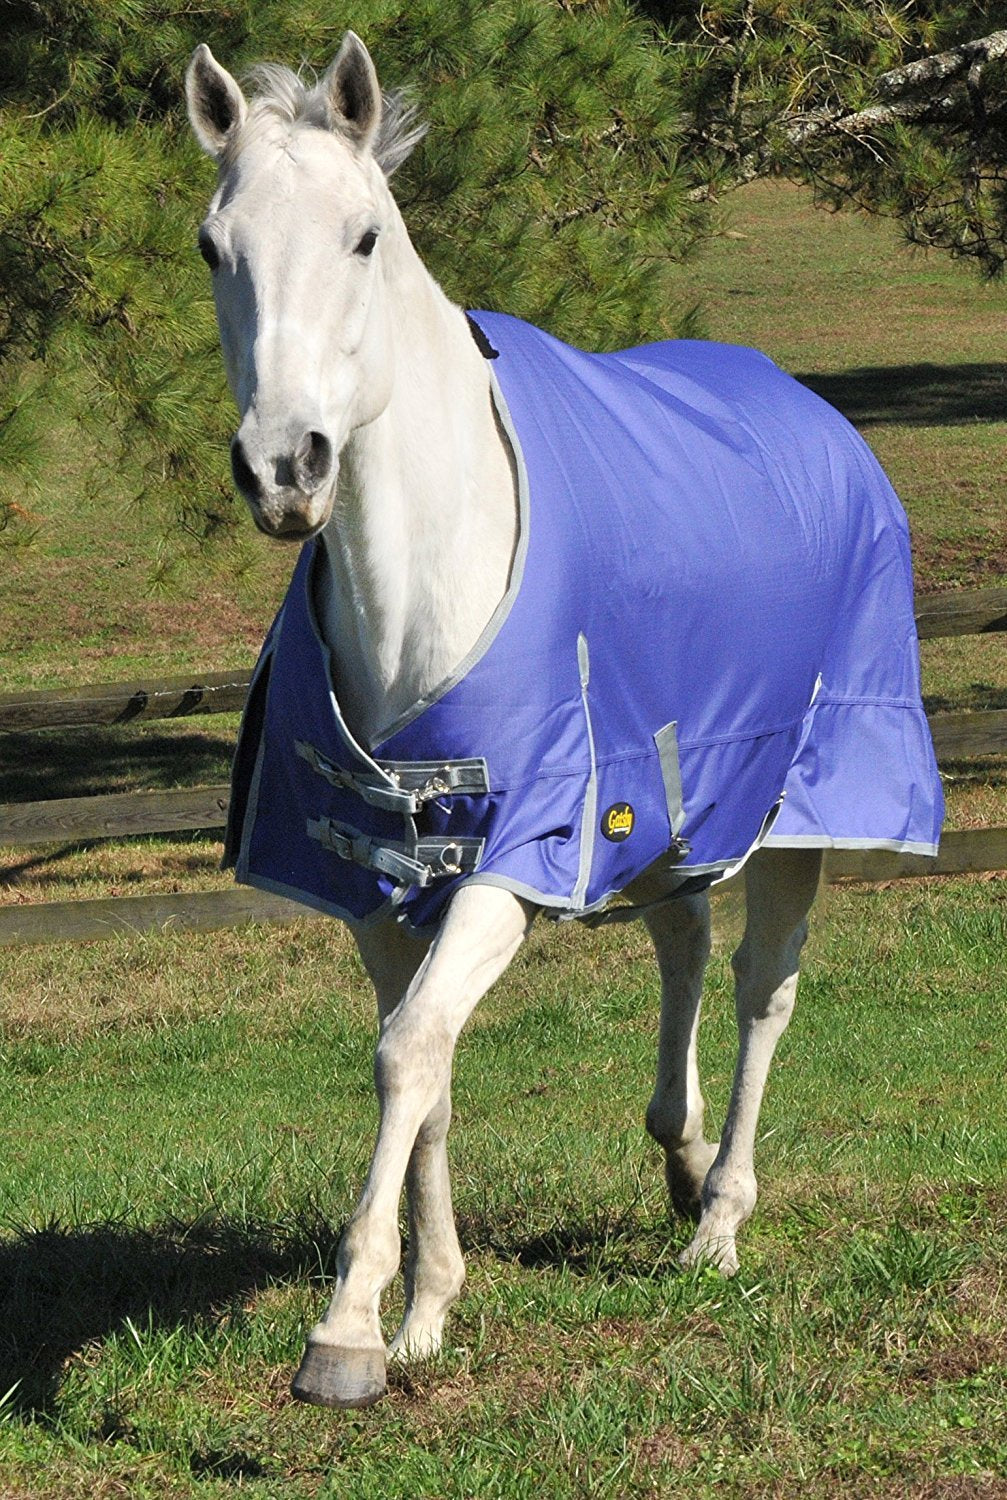 Gatsby Turnout Blanket Premium Medium Weight 1200d